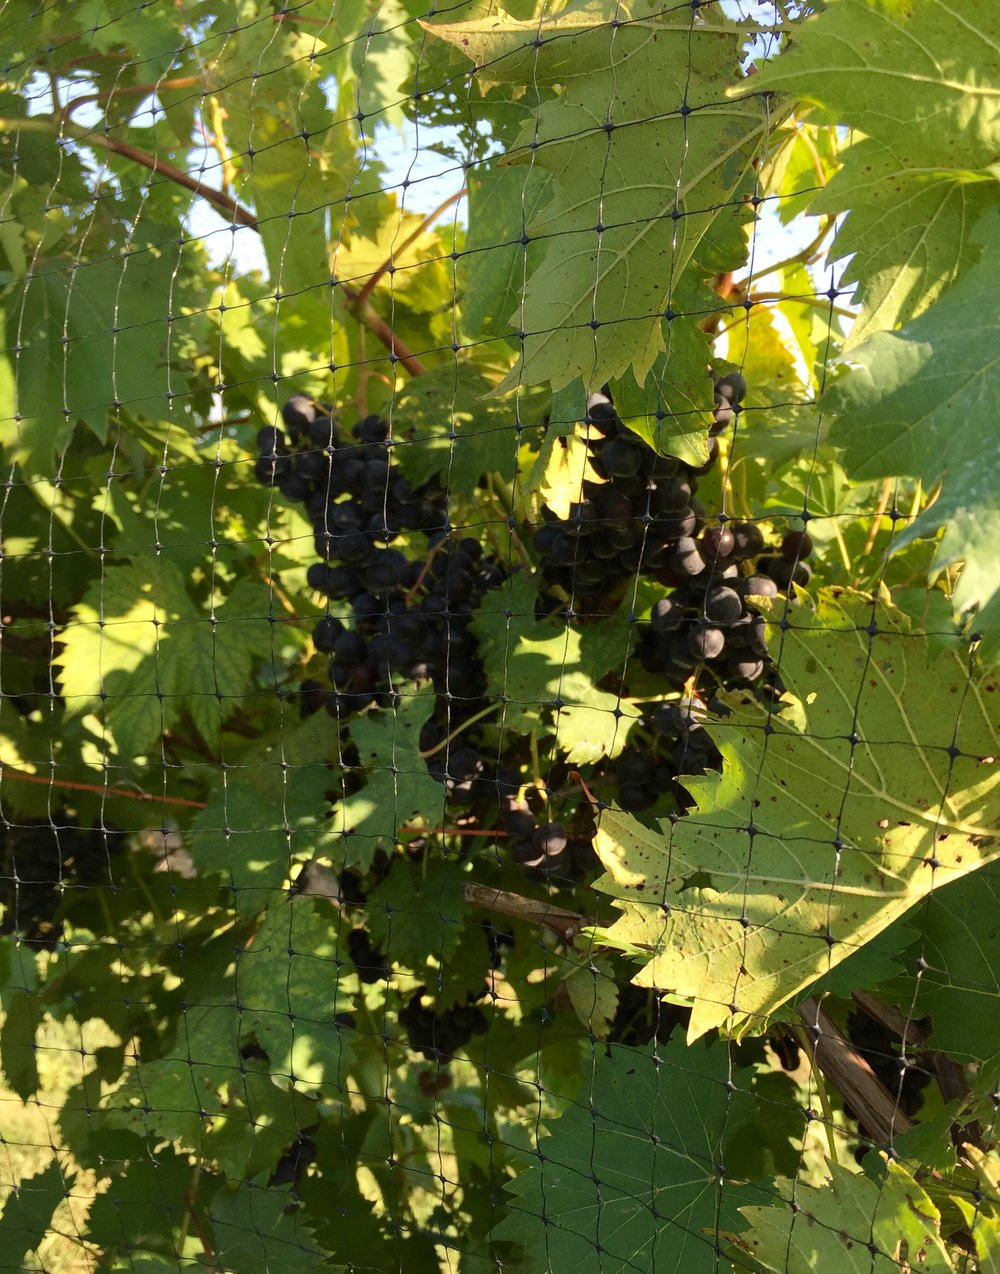 Chambourcin grapes as they ripen.